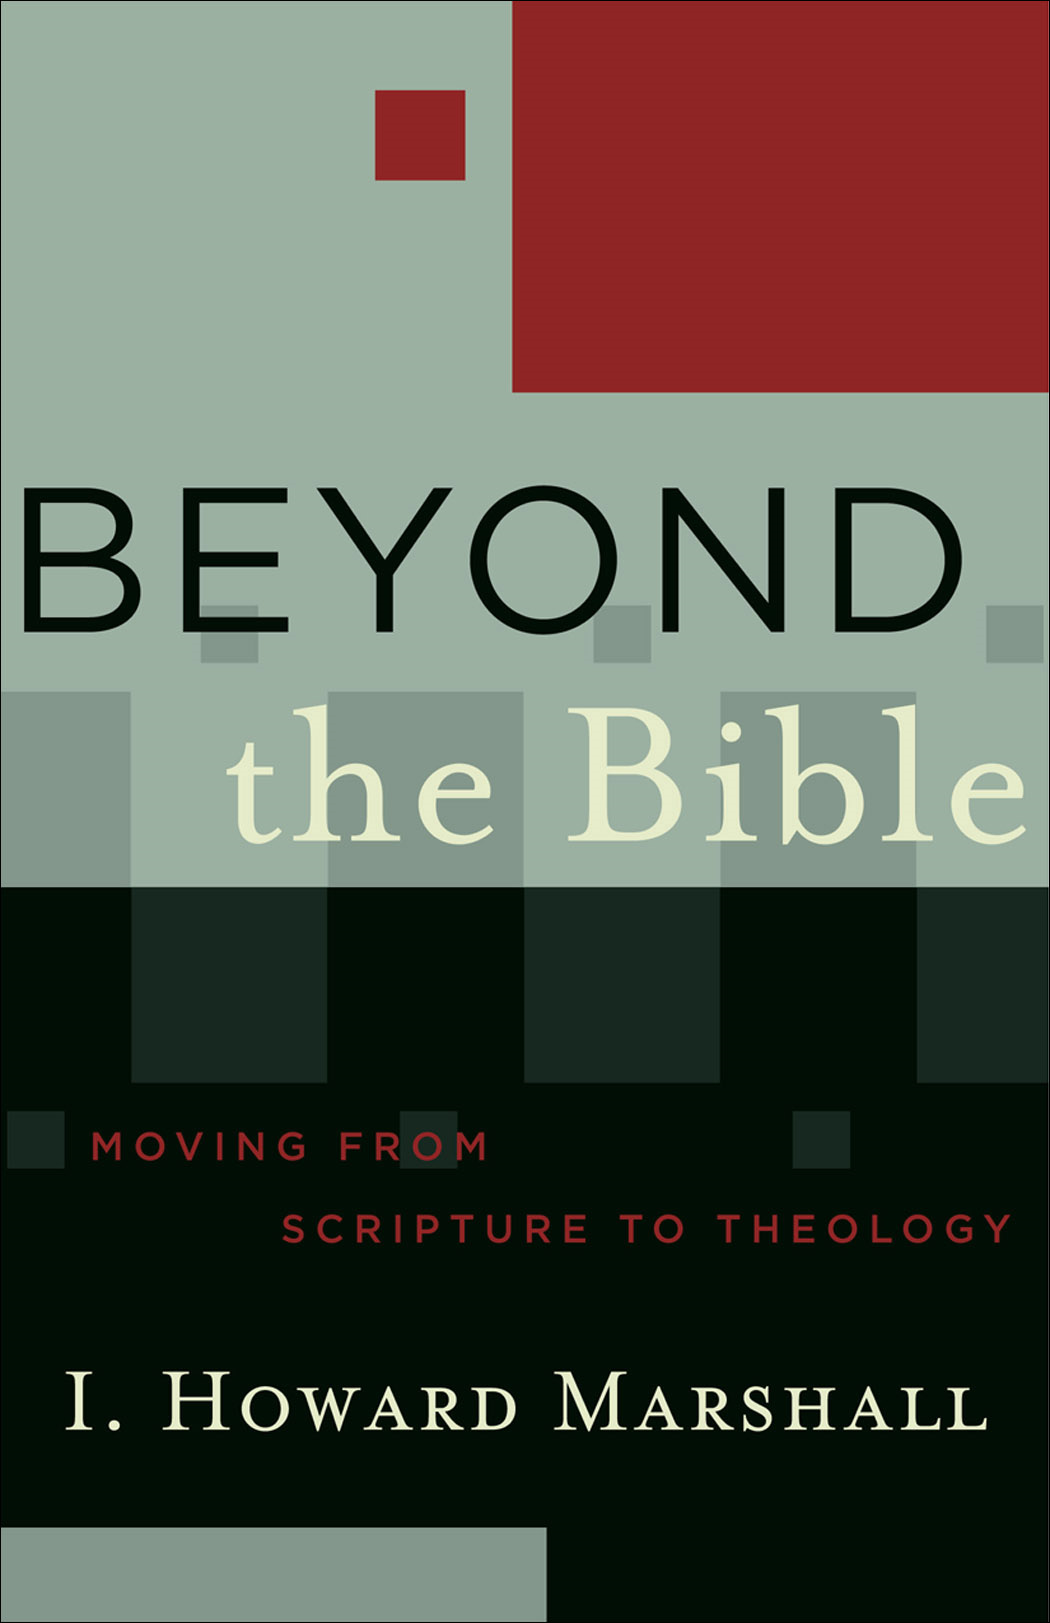 Beyond the Bible (Acadia Studies in Bible and Theology)